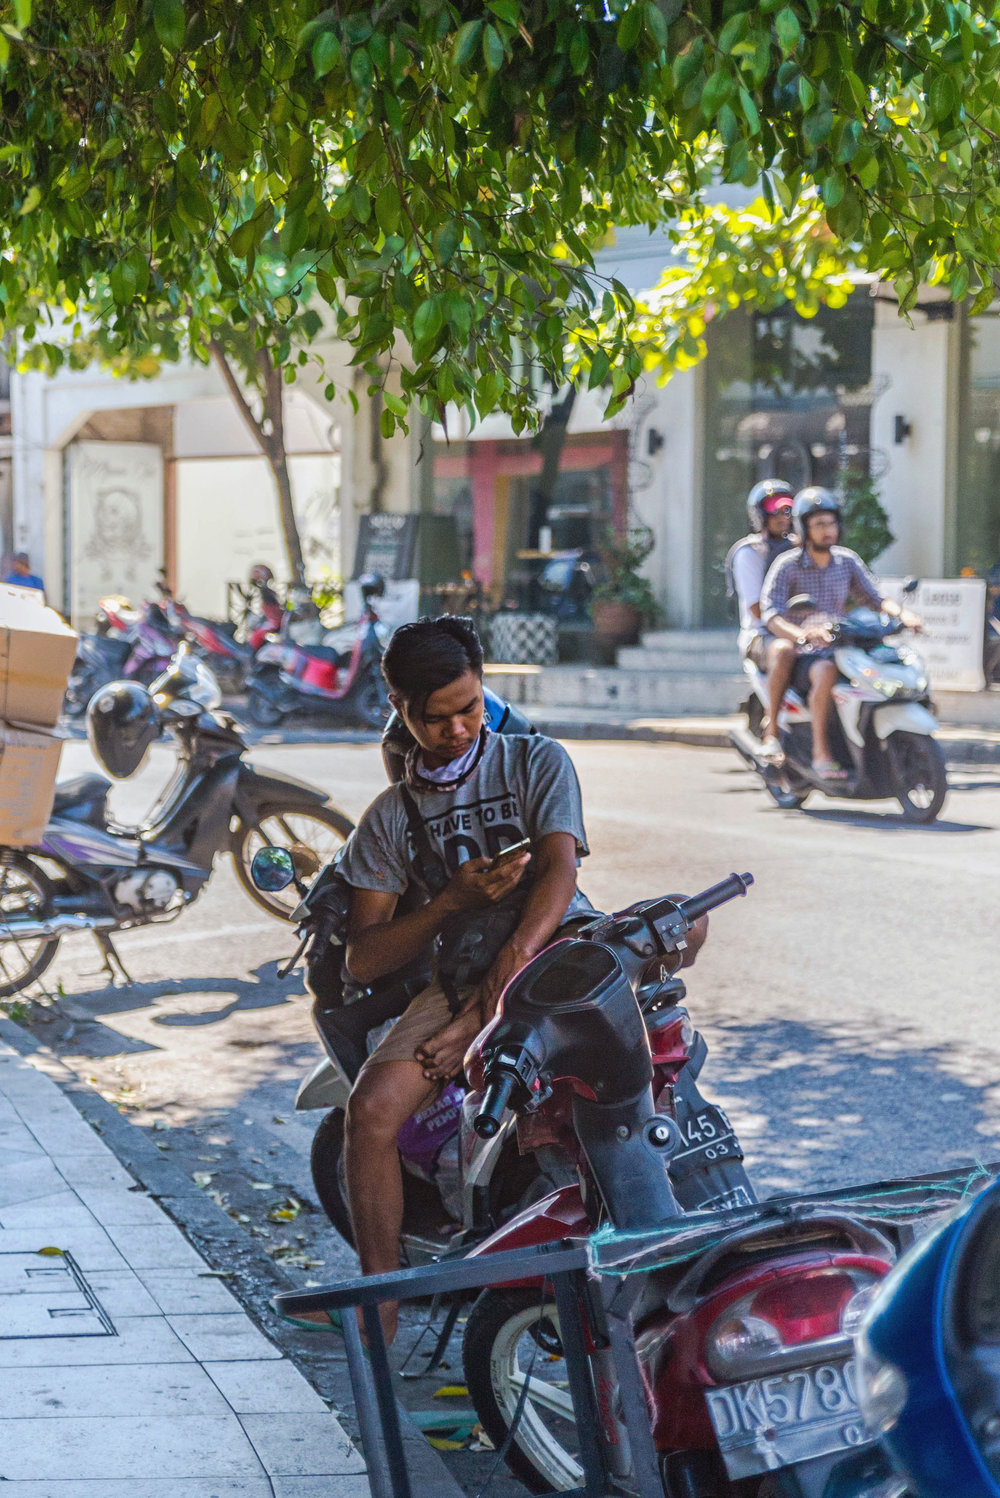 A man sits on his moped in Bali.